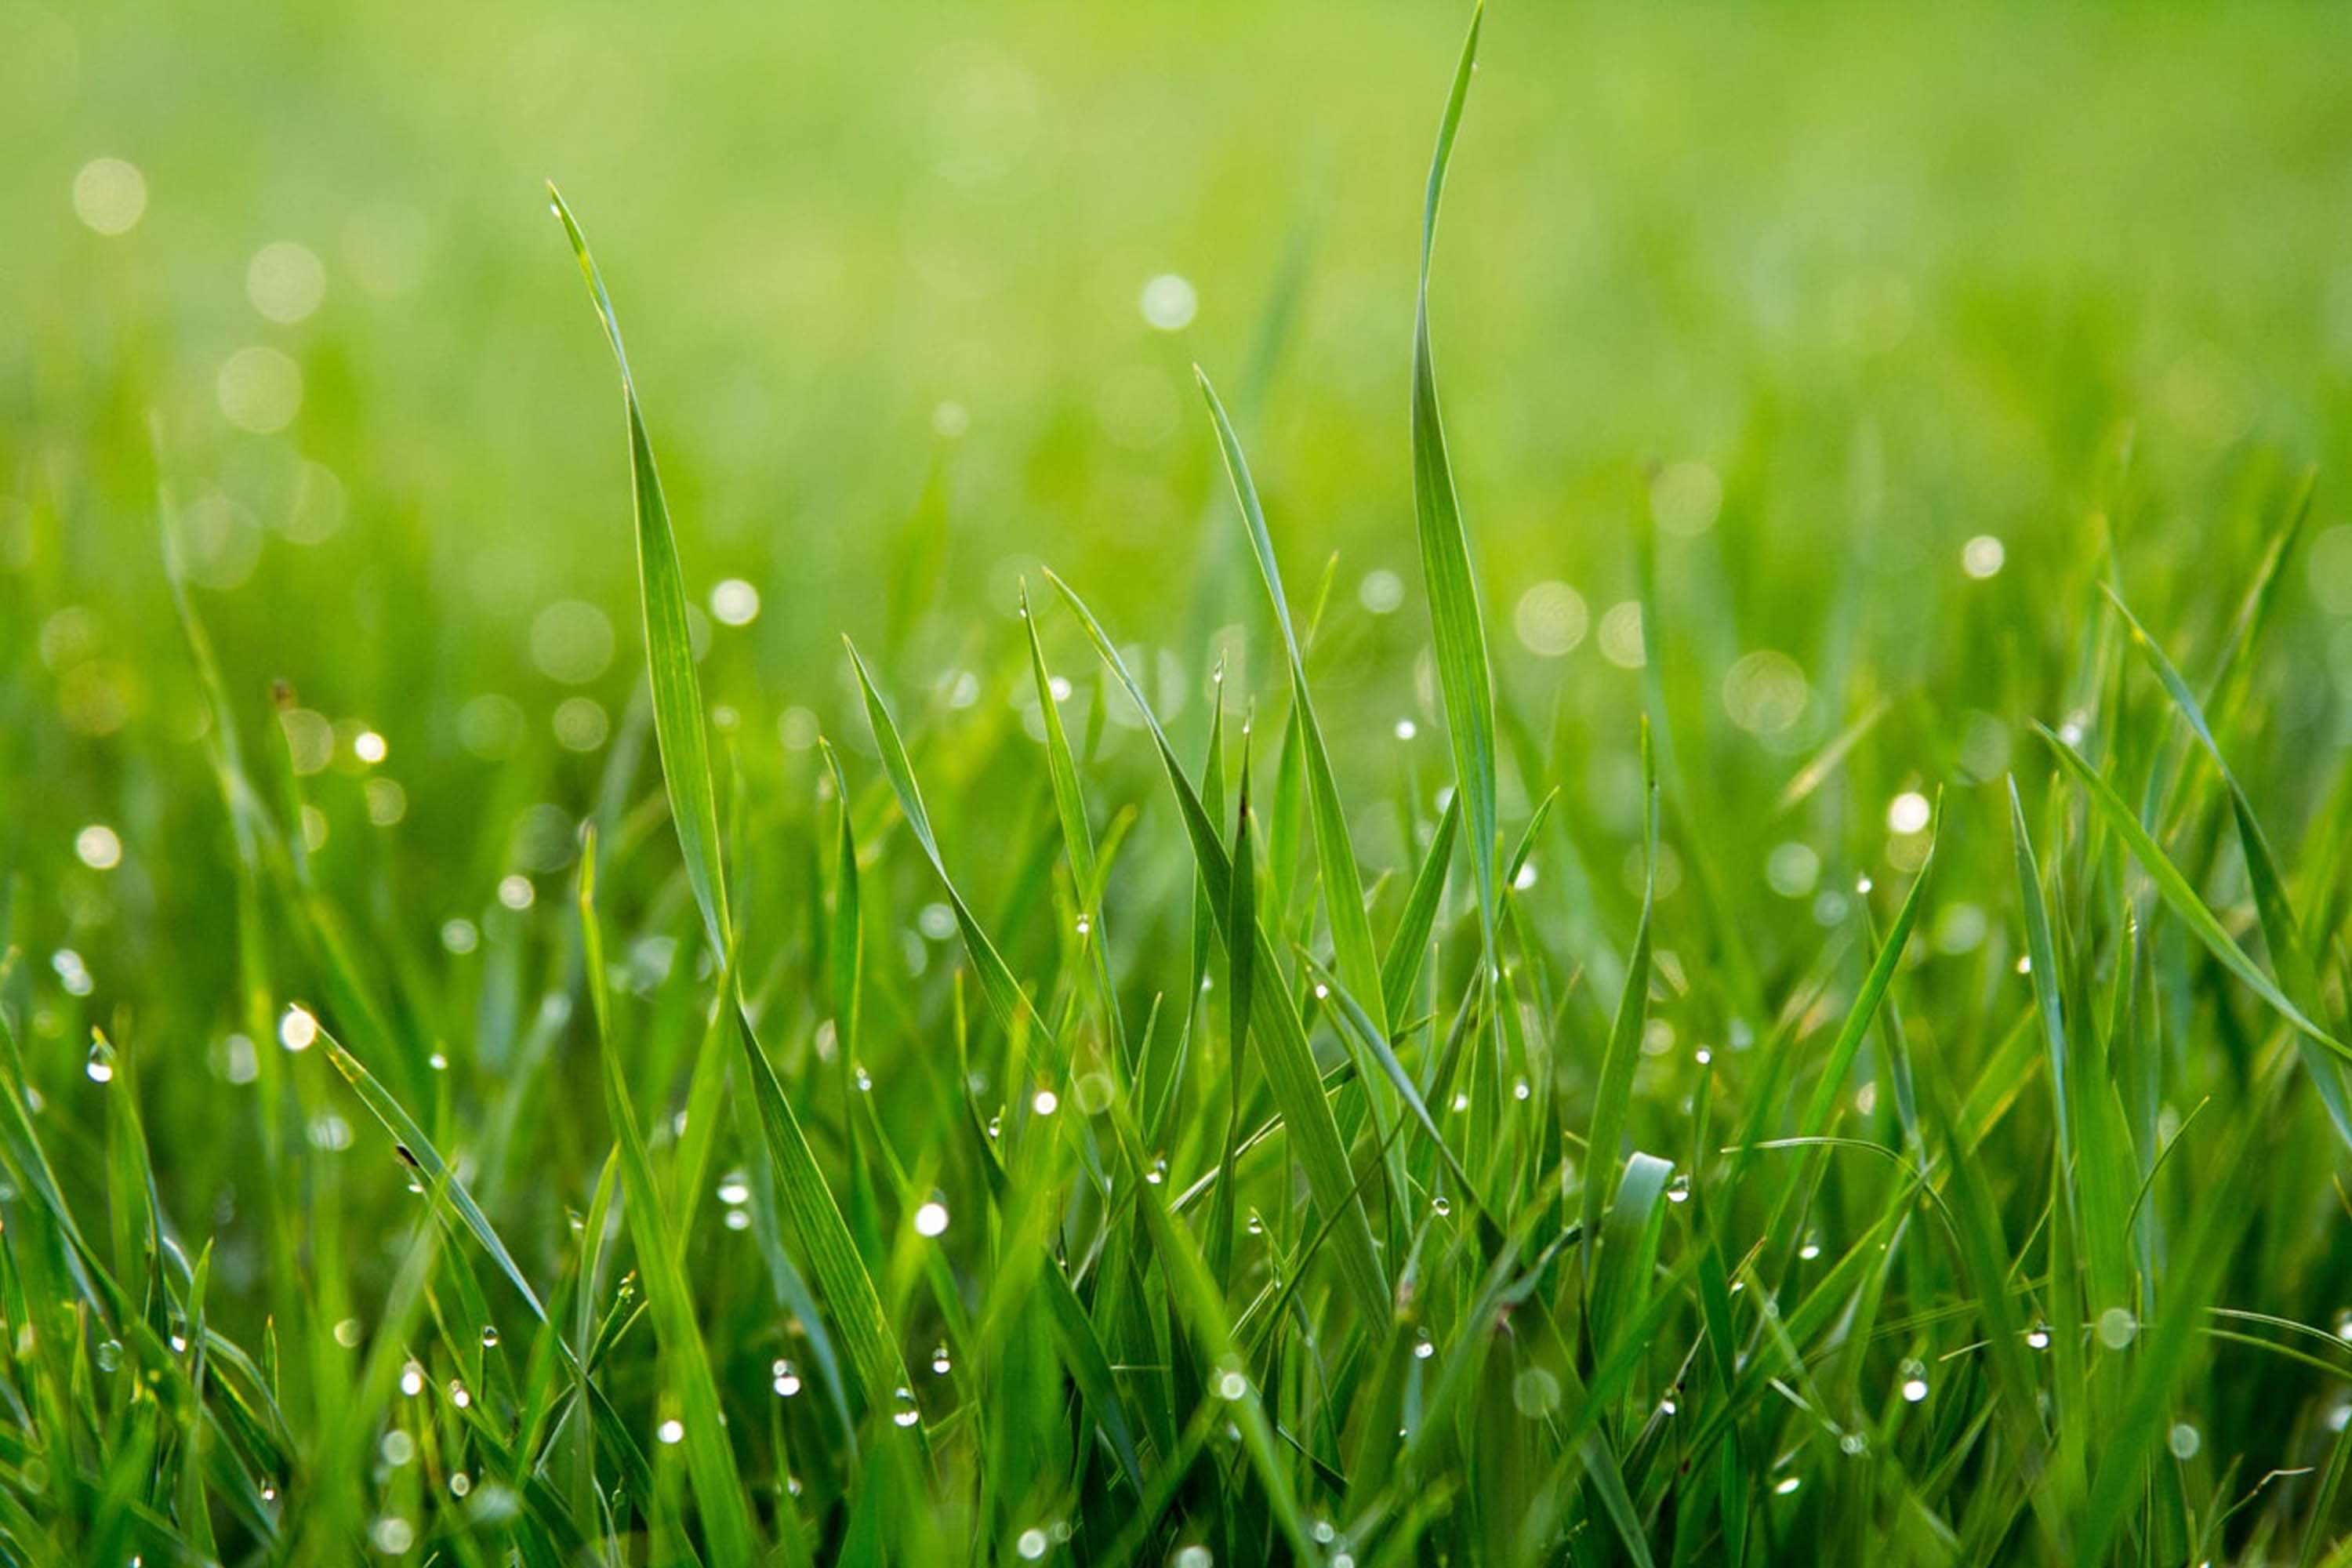 vHow Long Should You Water New Grass Seed